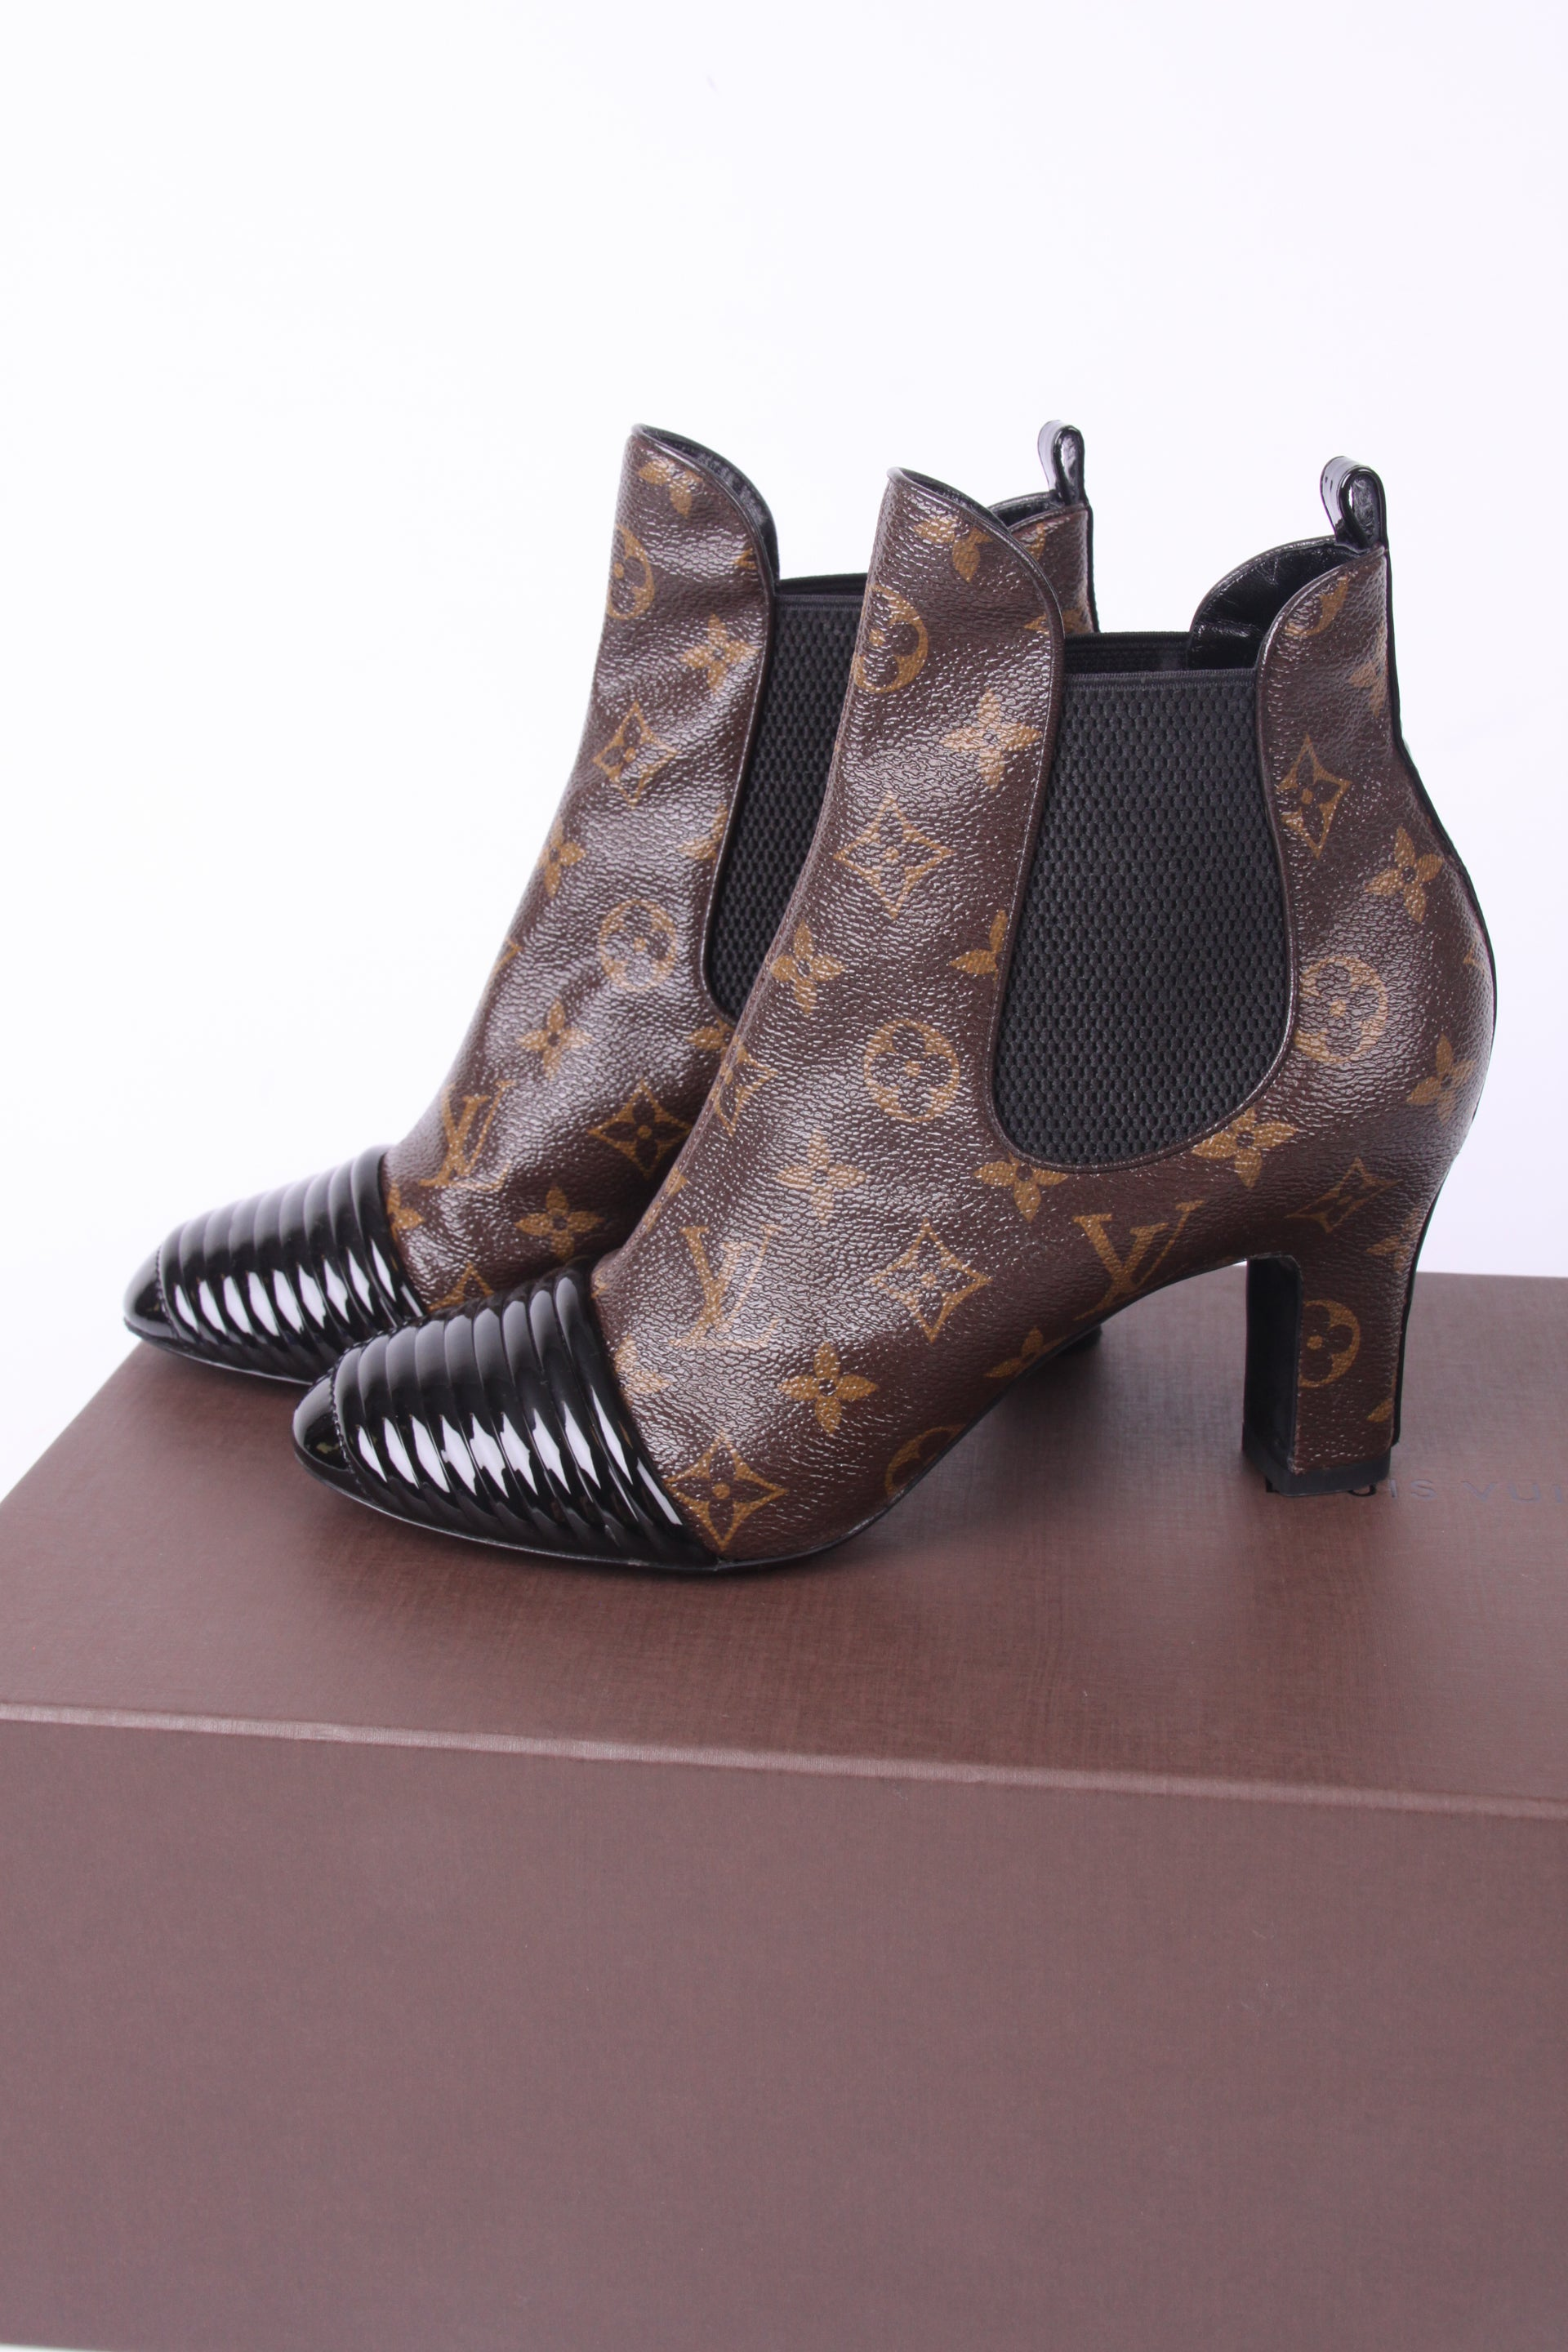 89094111e16 Louis Vuitton Revival Ankle Boot Monogram Canvas - brown and black at  1stdibs